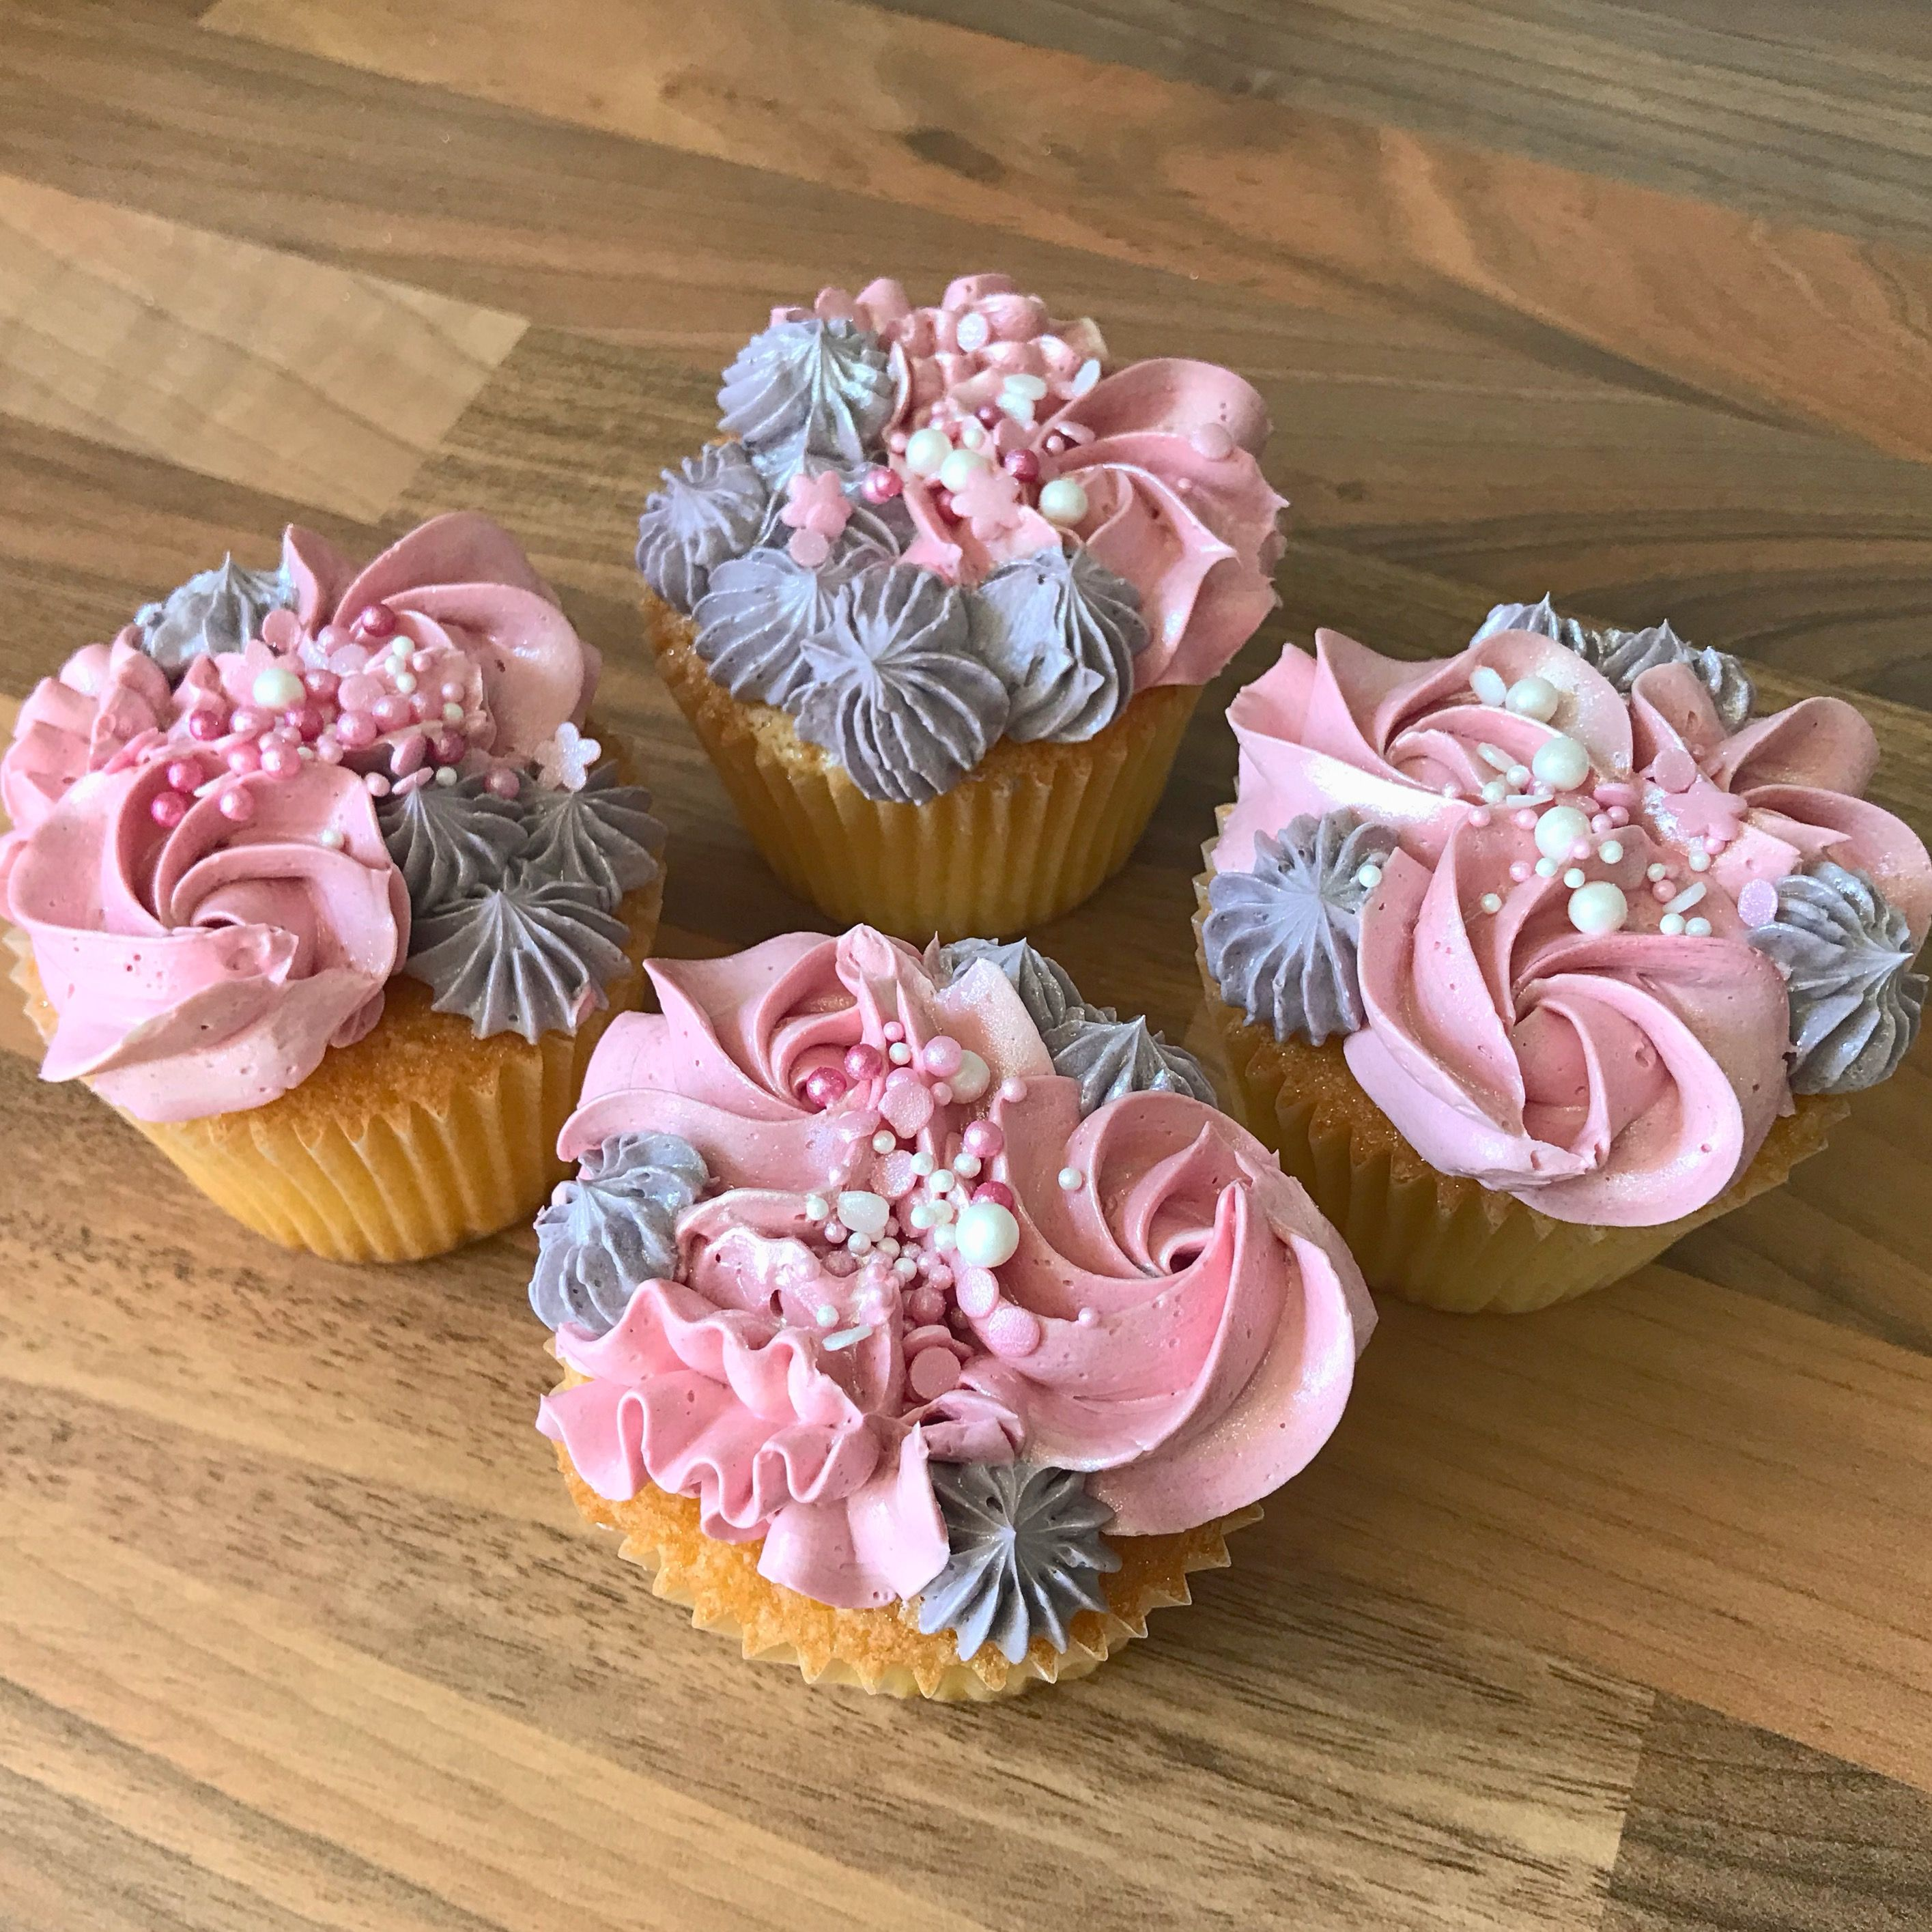 Pin by Cindy Pickering on Cupcakes Desserts, Cupcakes, Food